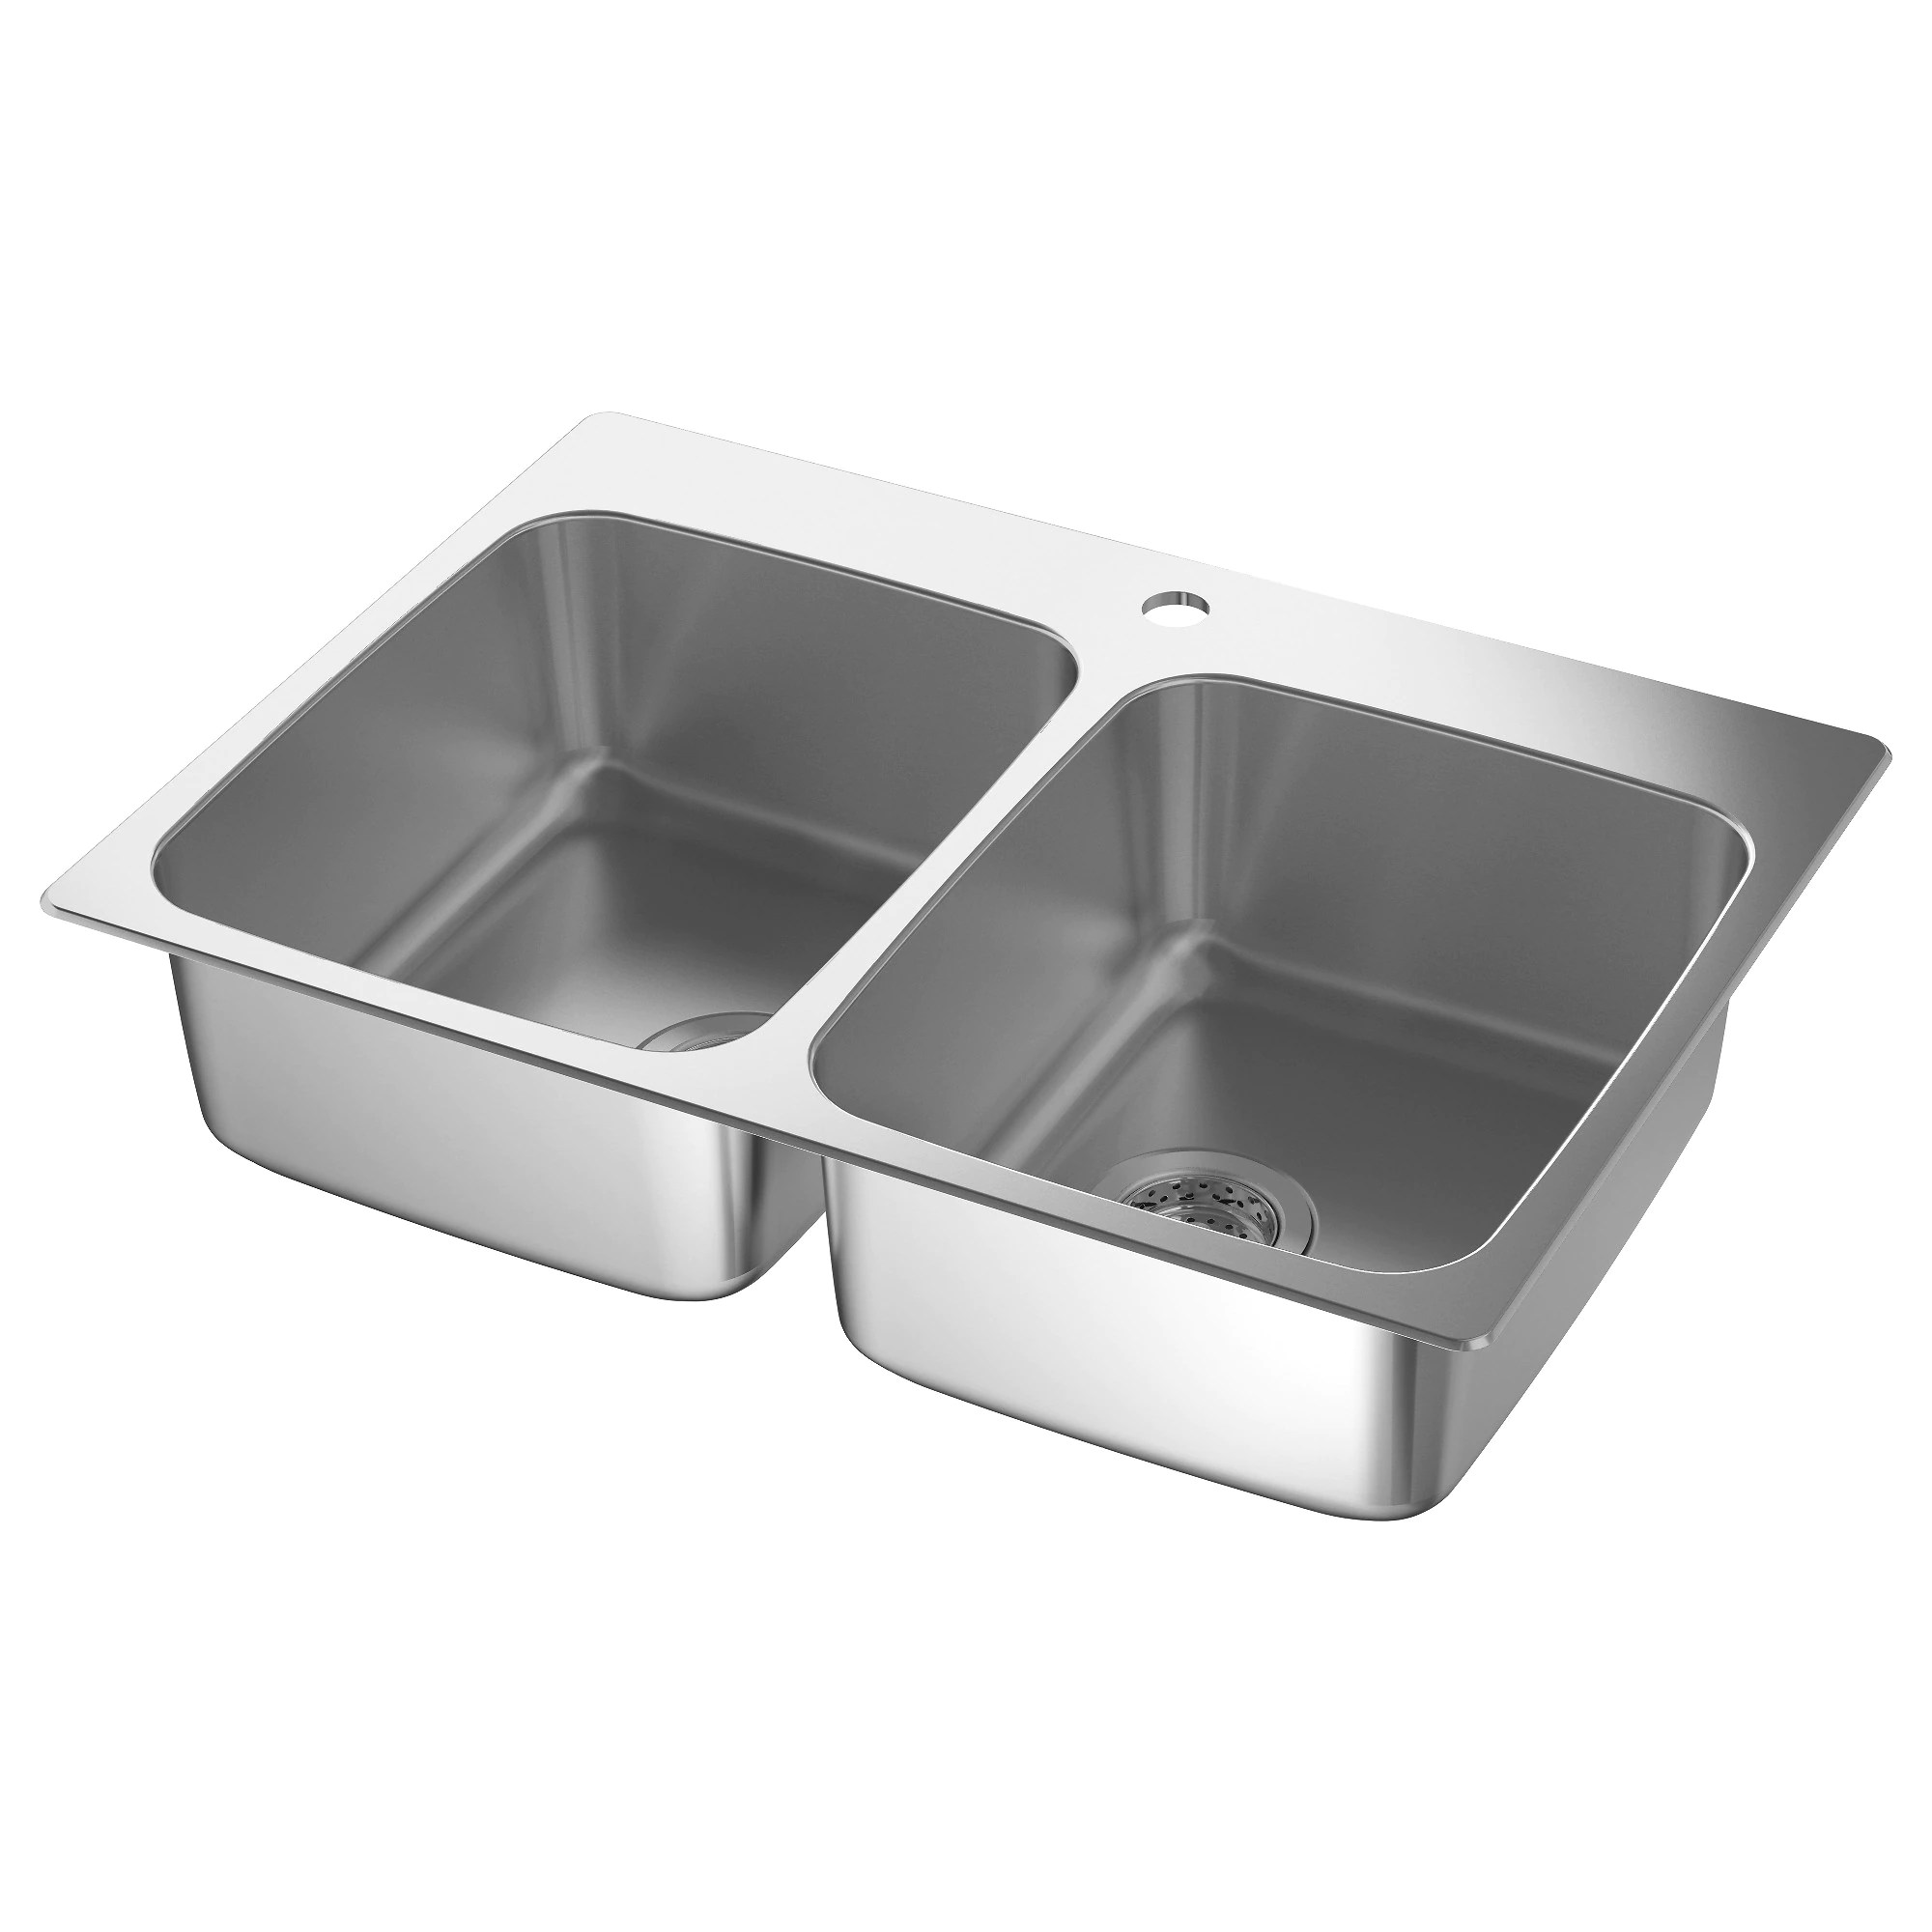 kitchen sink L NGUDDEN double bowl top mount sink stainless steel Length 29 1 2